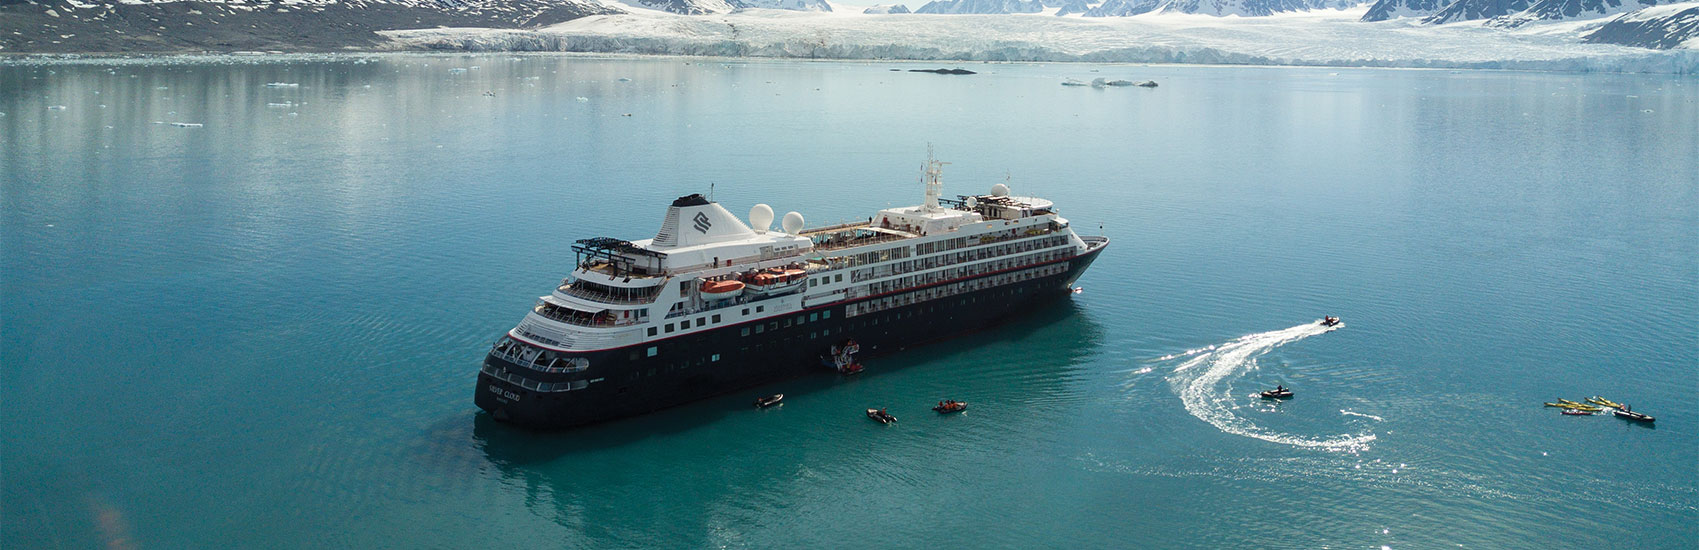 Expedition All-Inclusive Offer with Silversea Cruises